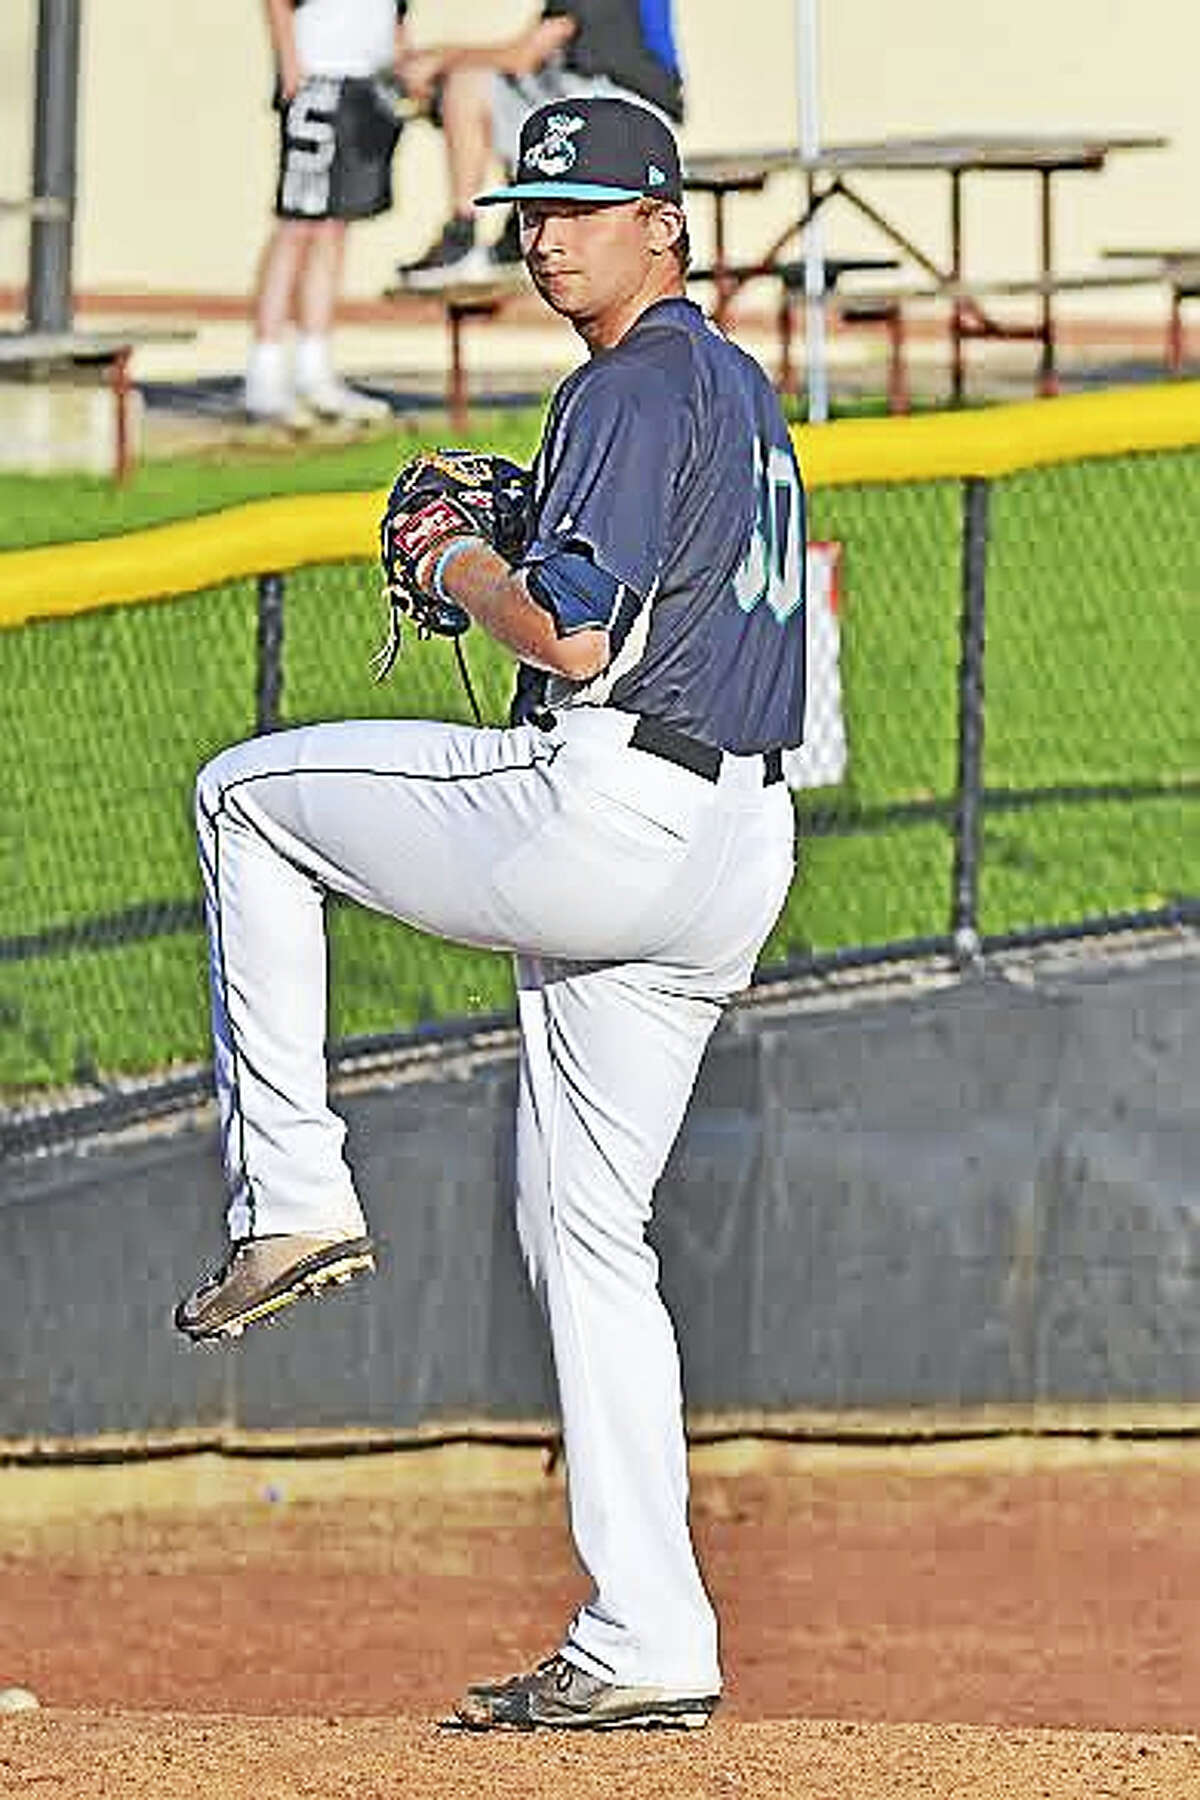 Newtown's Kyle Wilcox is having a successful season as a versatile reliever for Clinton LumberKings, a Class A affiliate of the Seattle Mariners.